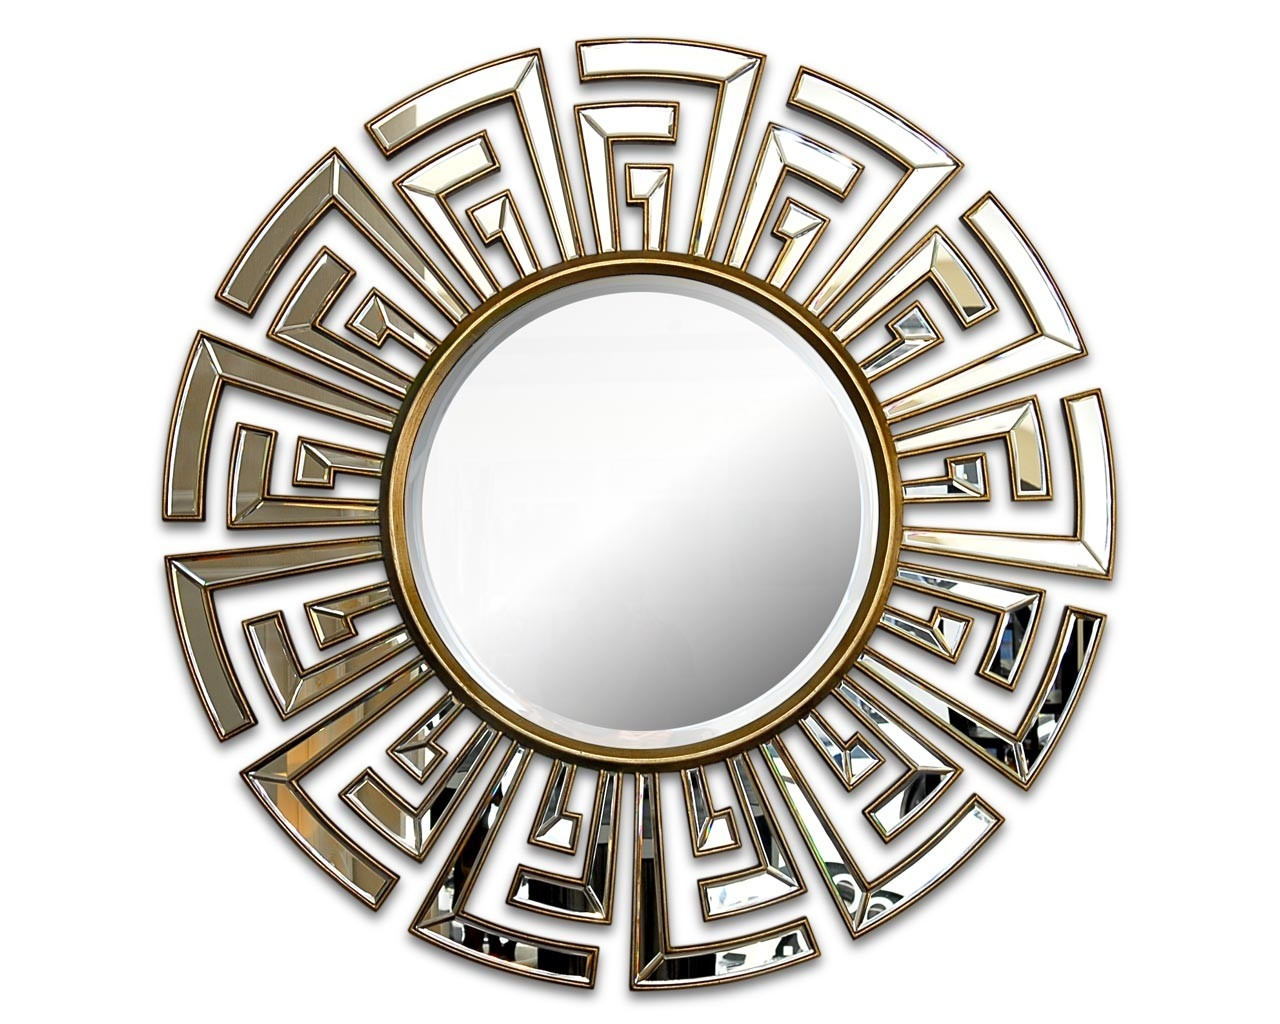 Contemporary Art Deco Round Mirror Statement Circular Mirrors Inside Round Art Deco Mirror (Image 8 of 15)